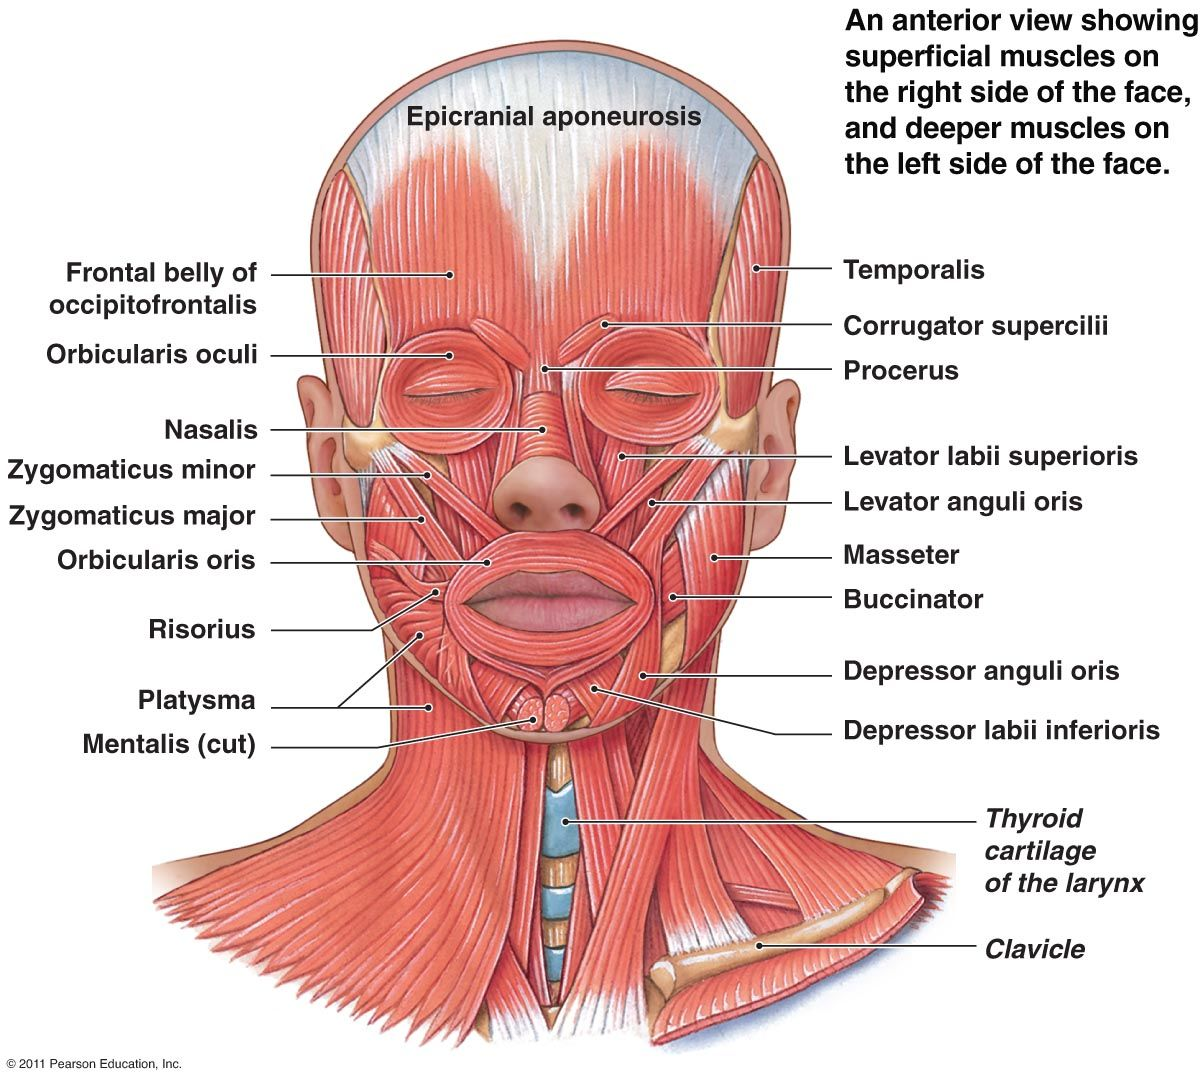 Facial muscles anatomy | anatomy | Pinterest | Muscle anatomy ...